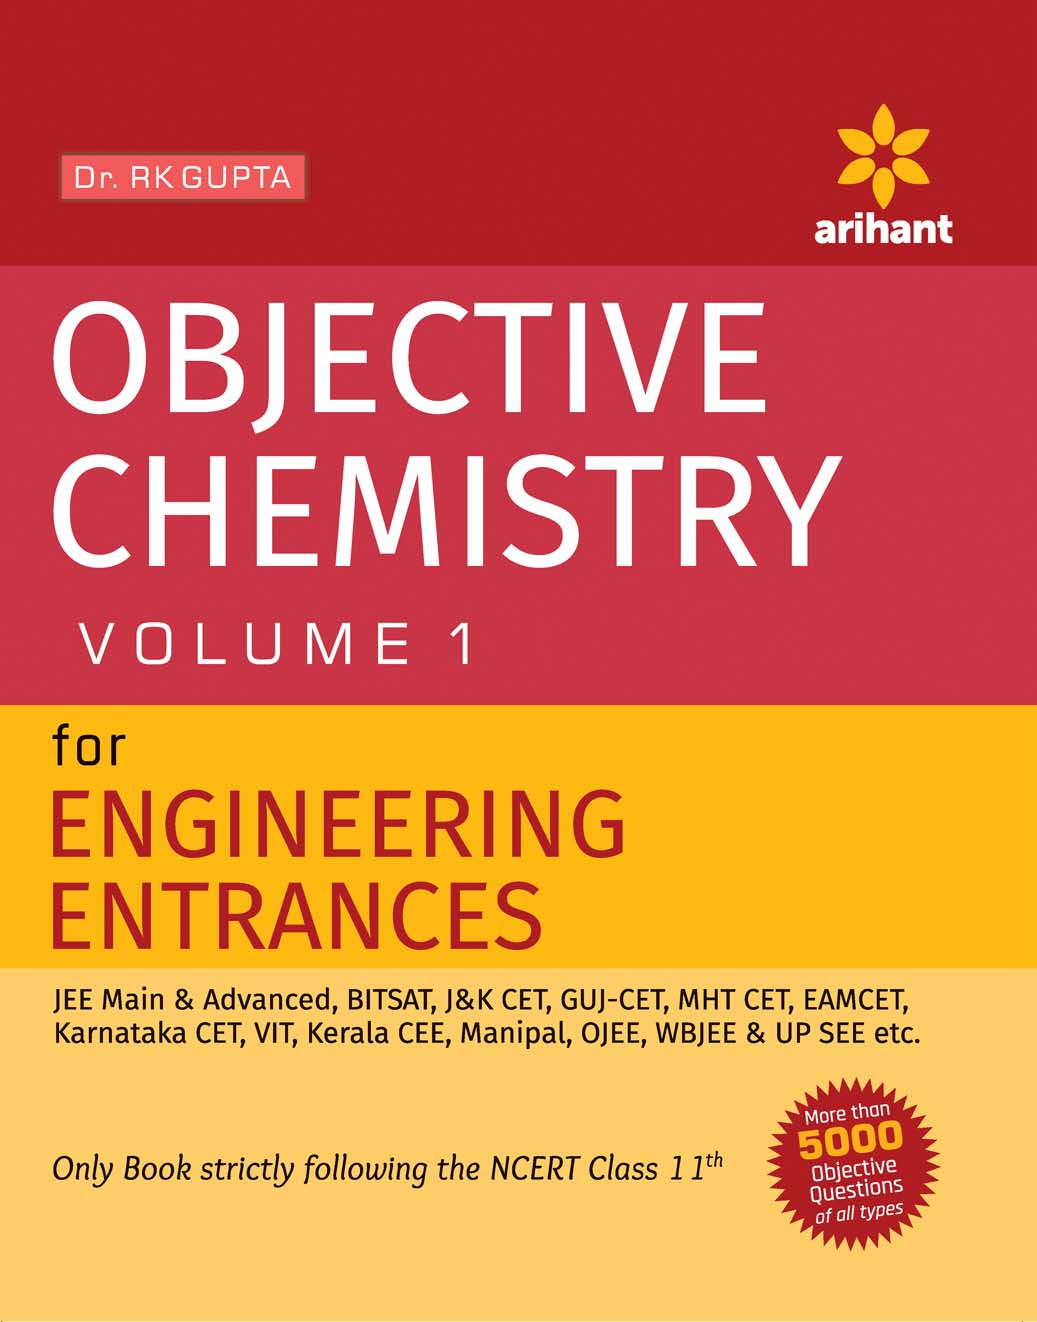 Objective Approach to Chemistry Vol 1 For Engineering Entrances by Dr. R K Gupta on Textnook.com